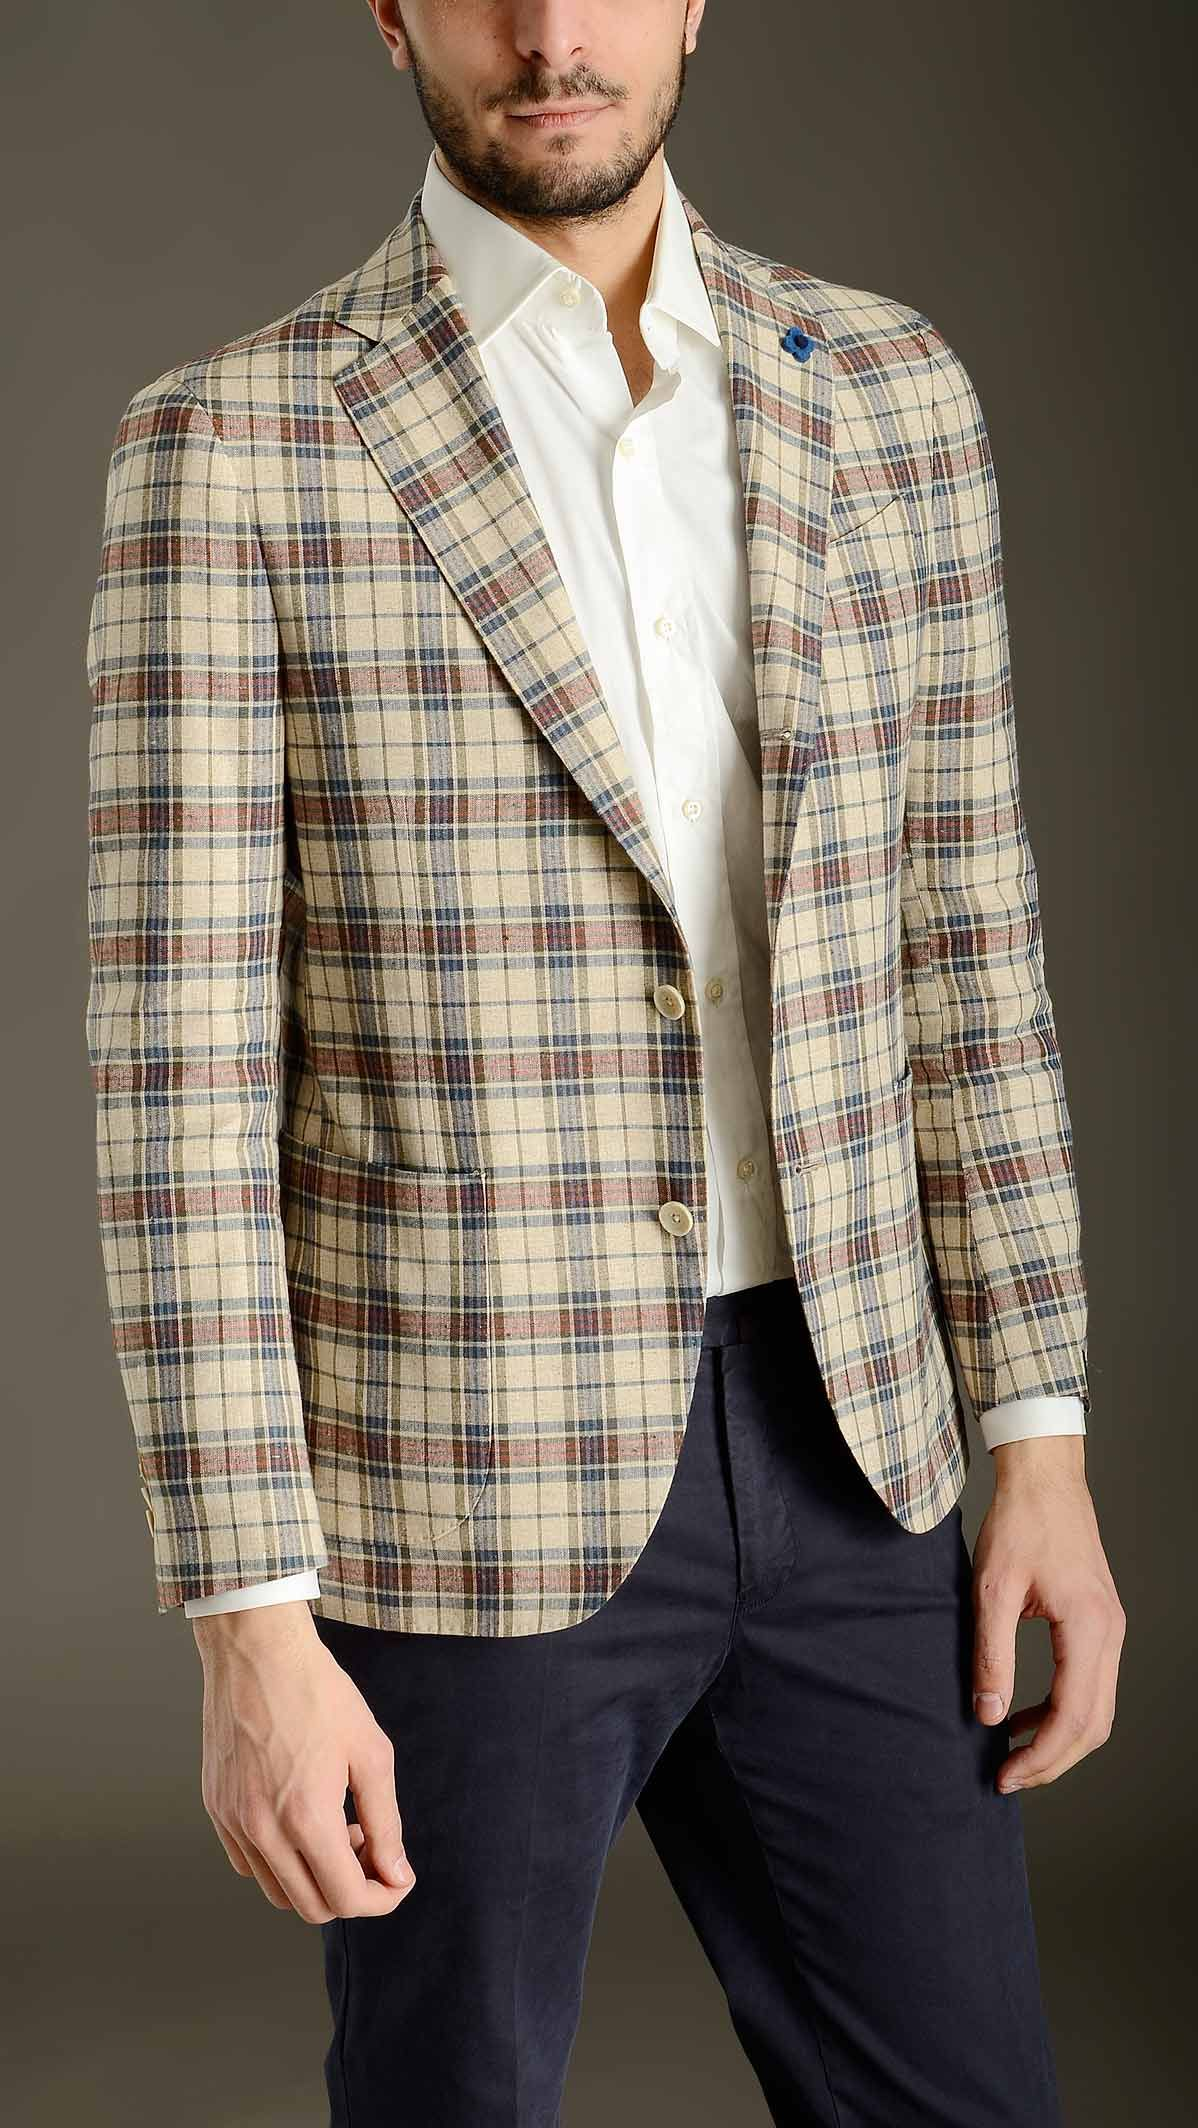 LARDINI Checked silk-linen deconstructed jacket featuring three buttons lapel roll, long sleeves, cuffs featuring four buttons fastening, two patch pockets and a chest pocket at front, liningless, side slit, logoed blossom detail on the chest pocket, 51% silk 49% linen.